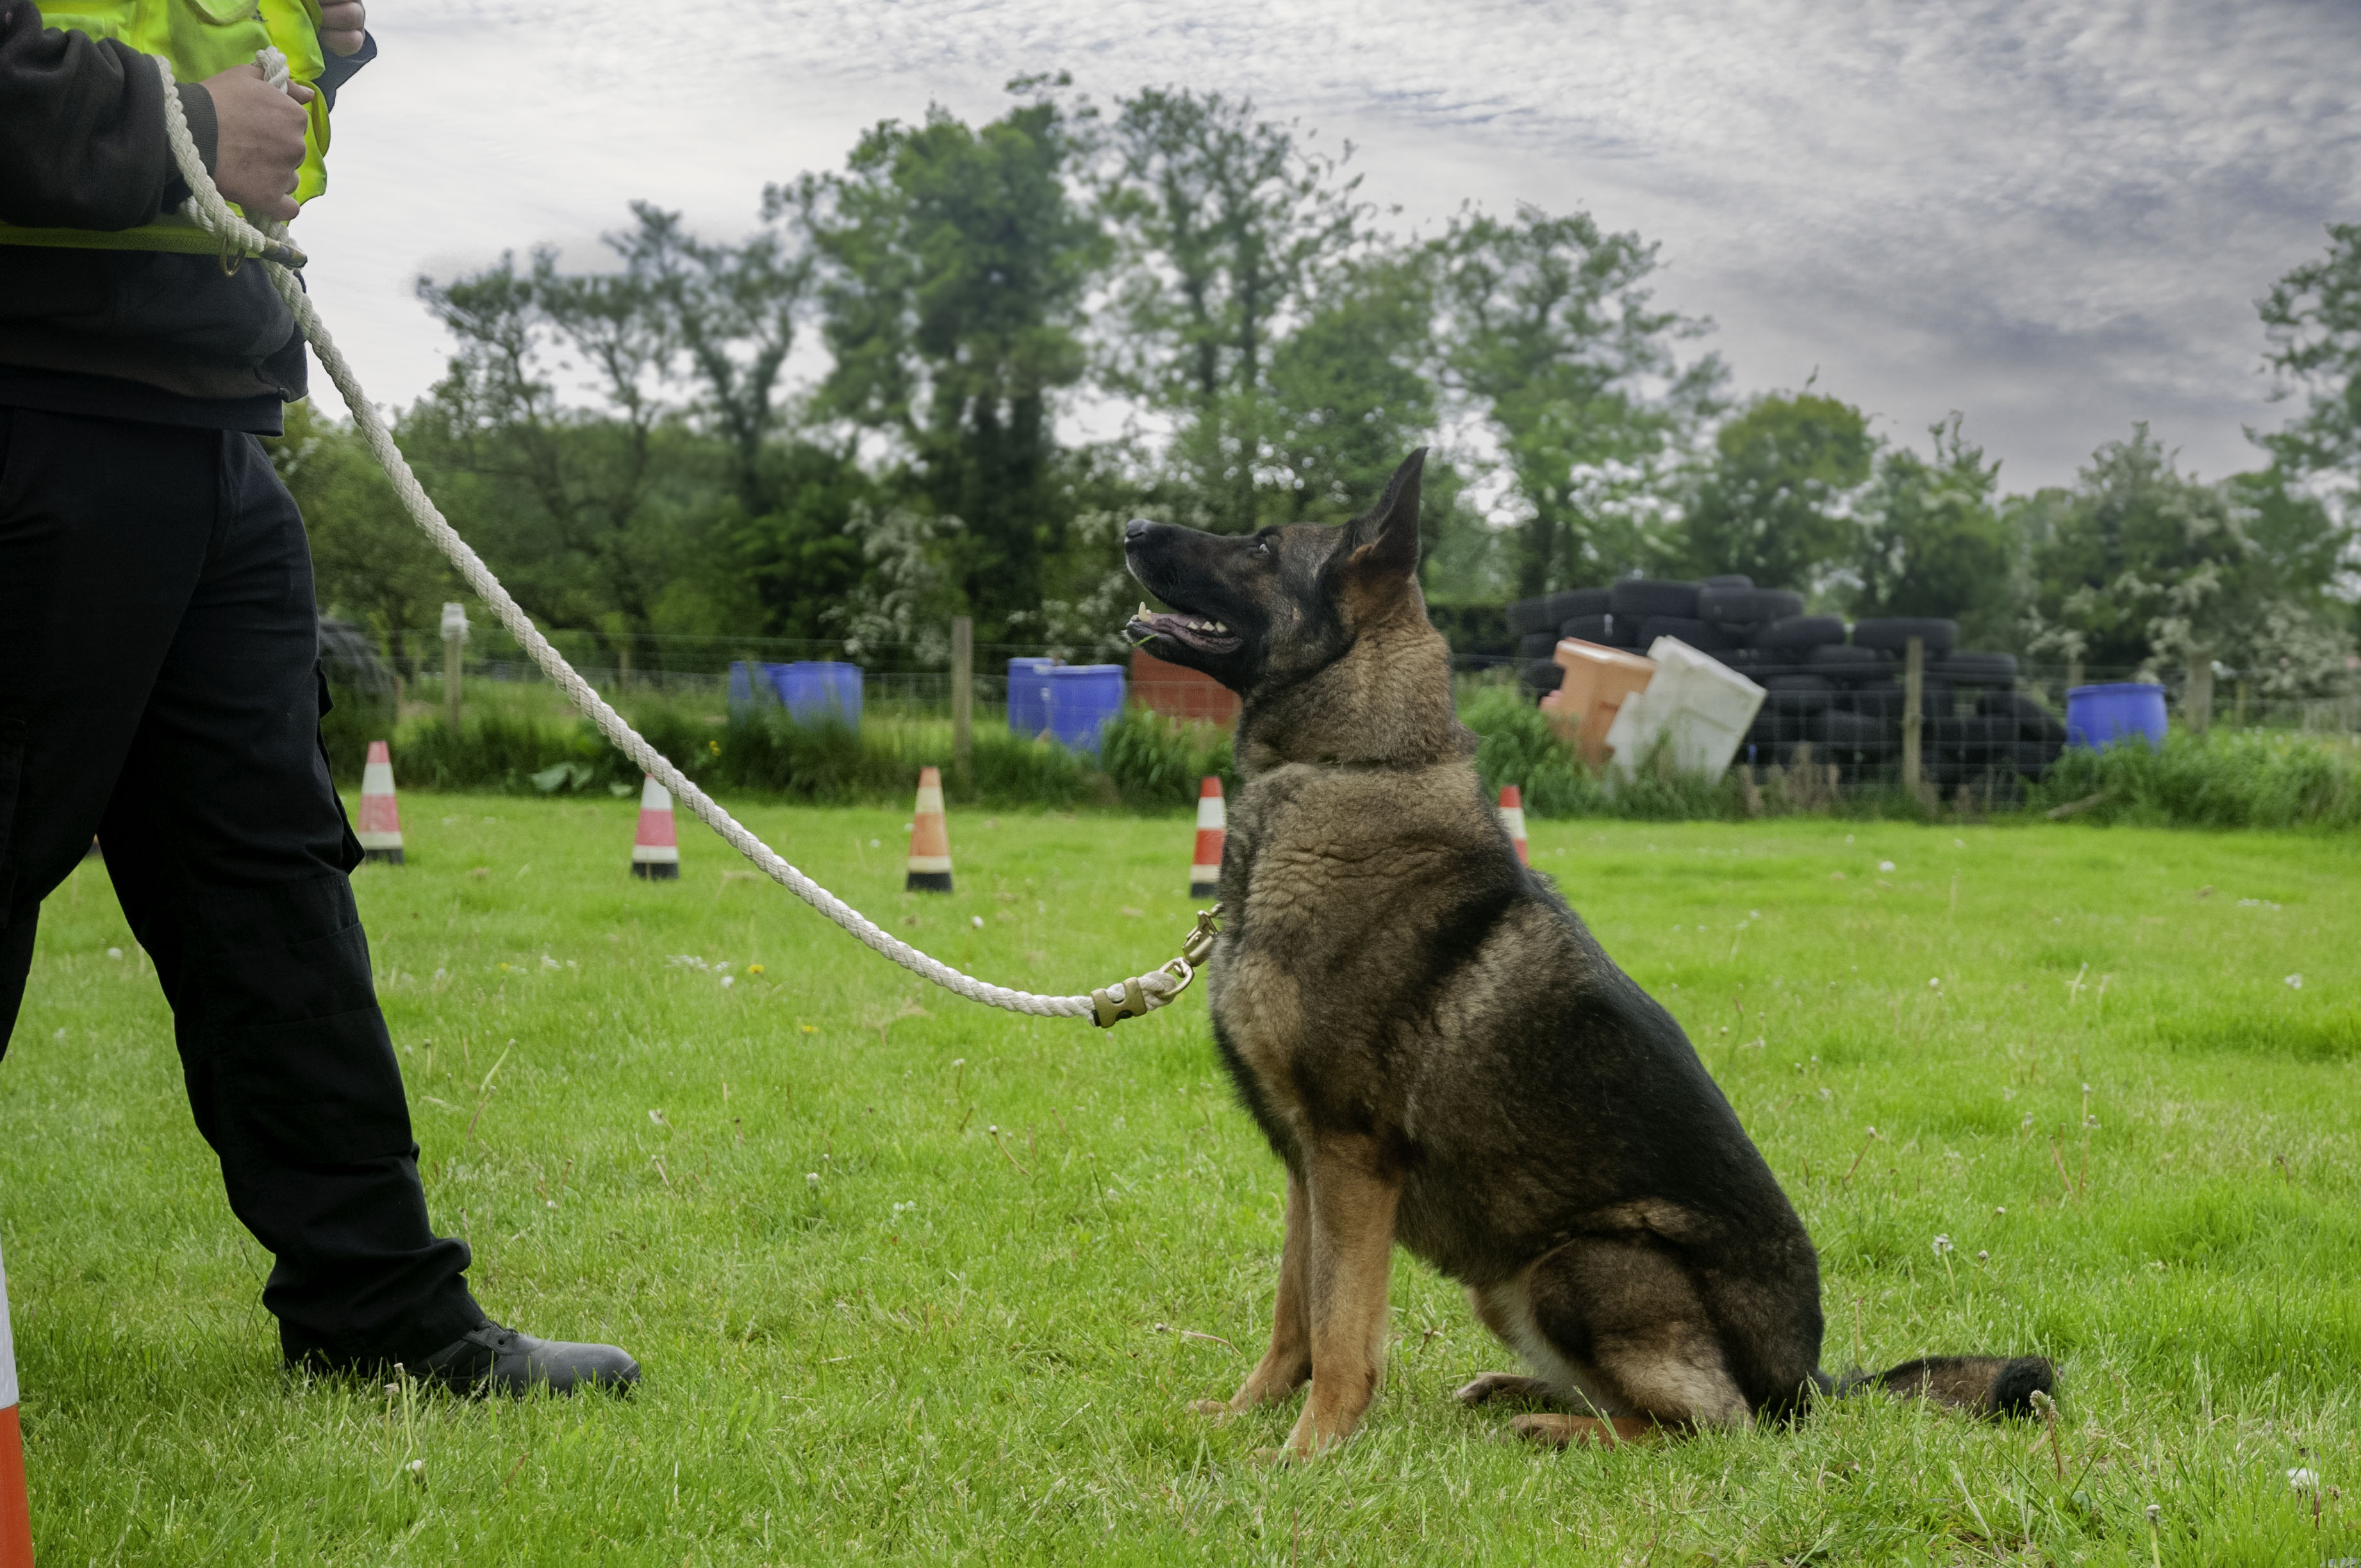 Re-Opening Our K9 Training Grounds After the Covid-19 Lockdowns